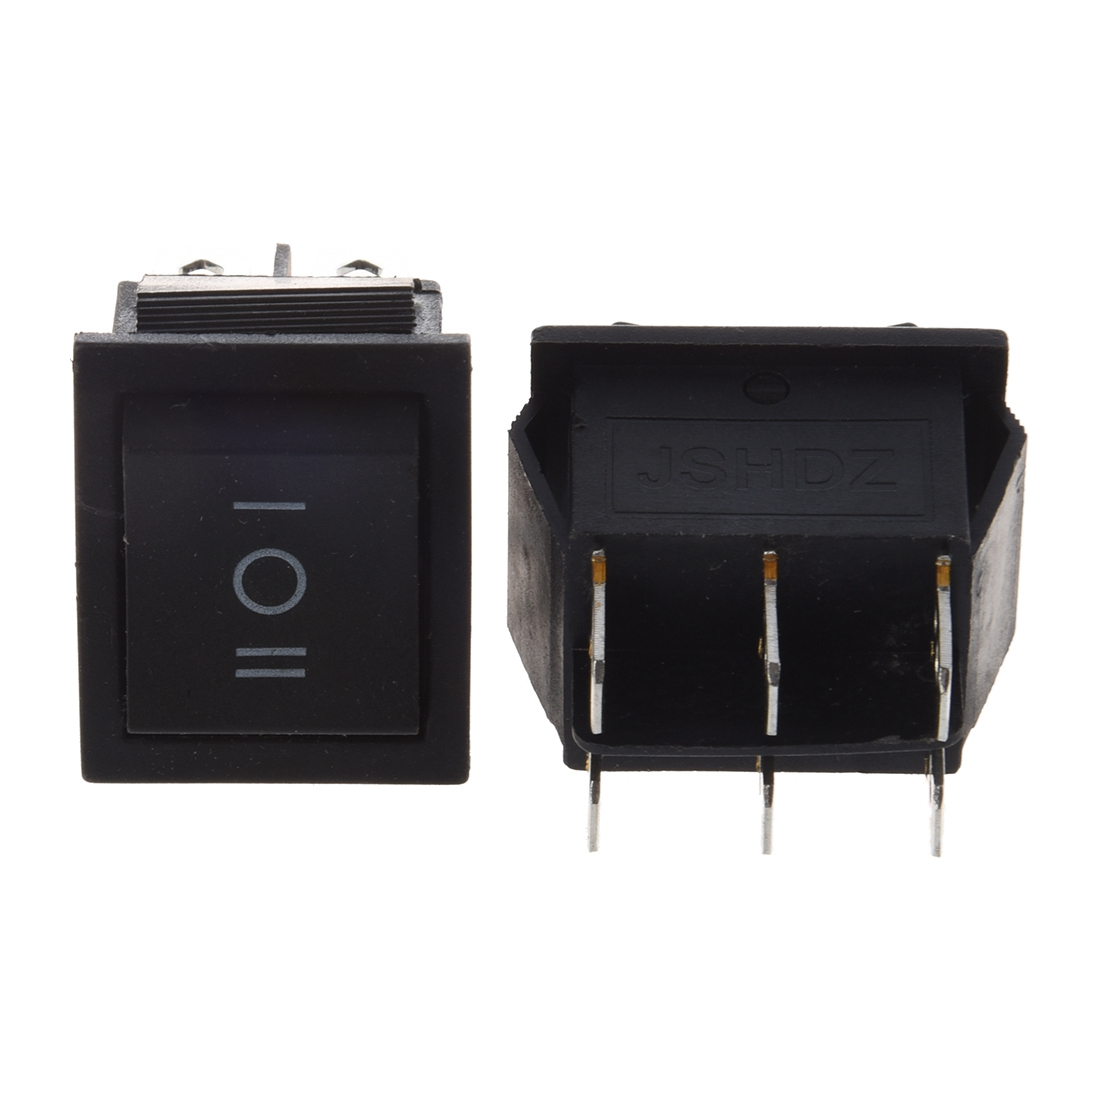 Lighting Accessories 2pcs 6 Pin Dpdt On-off-on 3 Position Snap In Rocker Switch 15a/250v 20a/125v Ac Refreshment Lights & Lighting